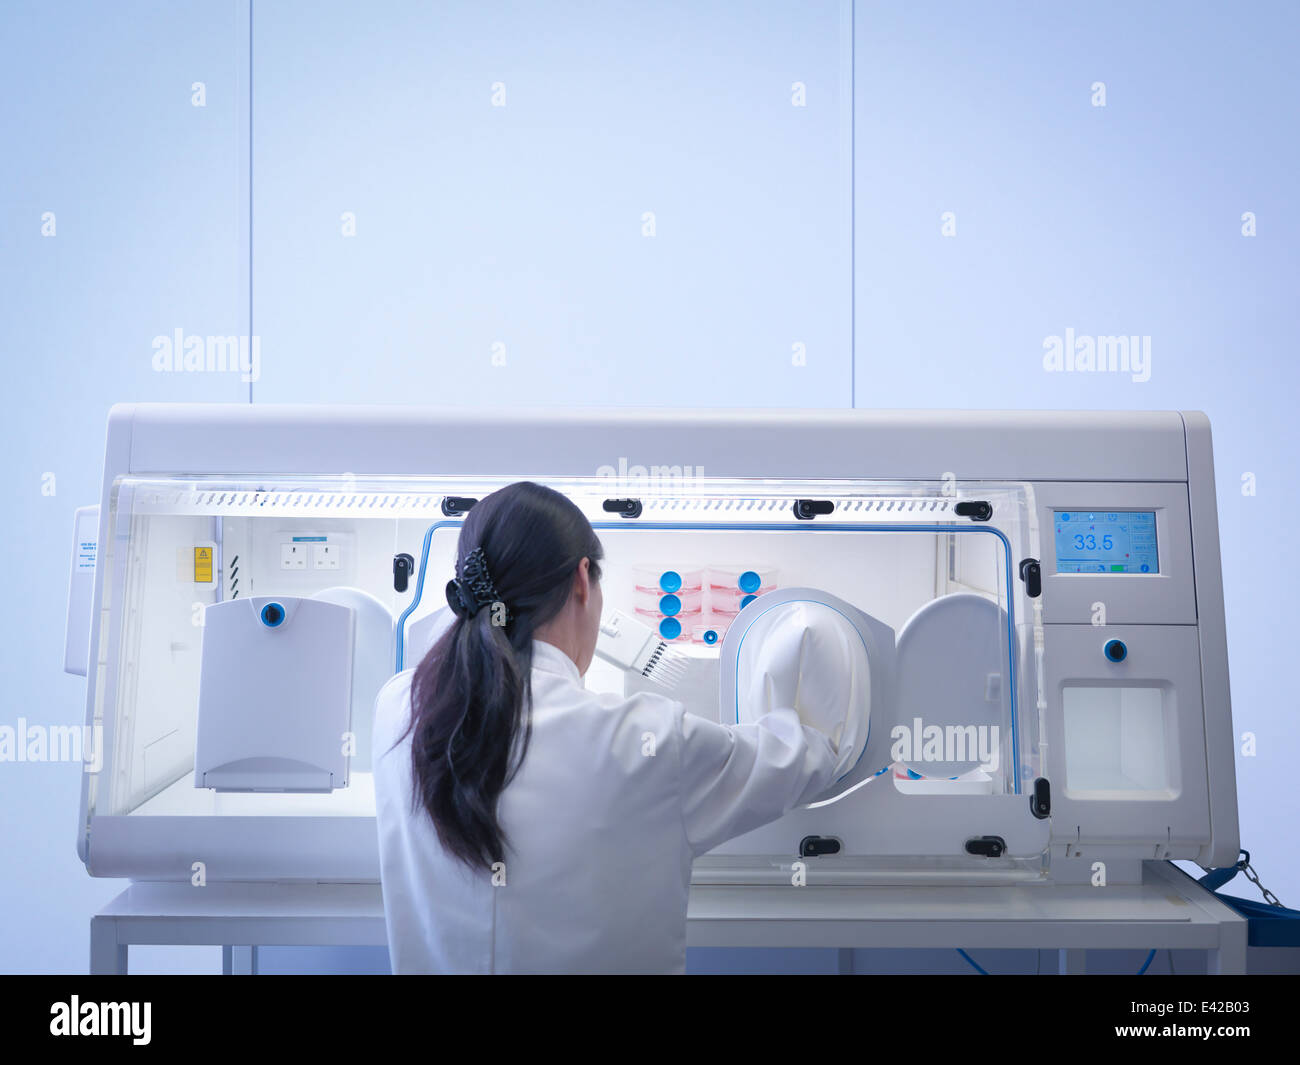 Rear view of scientist making cell culture using pipette inside laboratory workstation - Stock Image